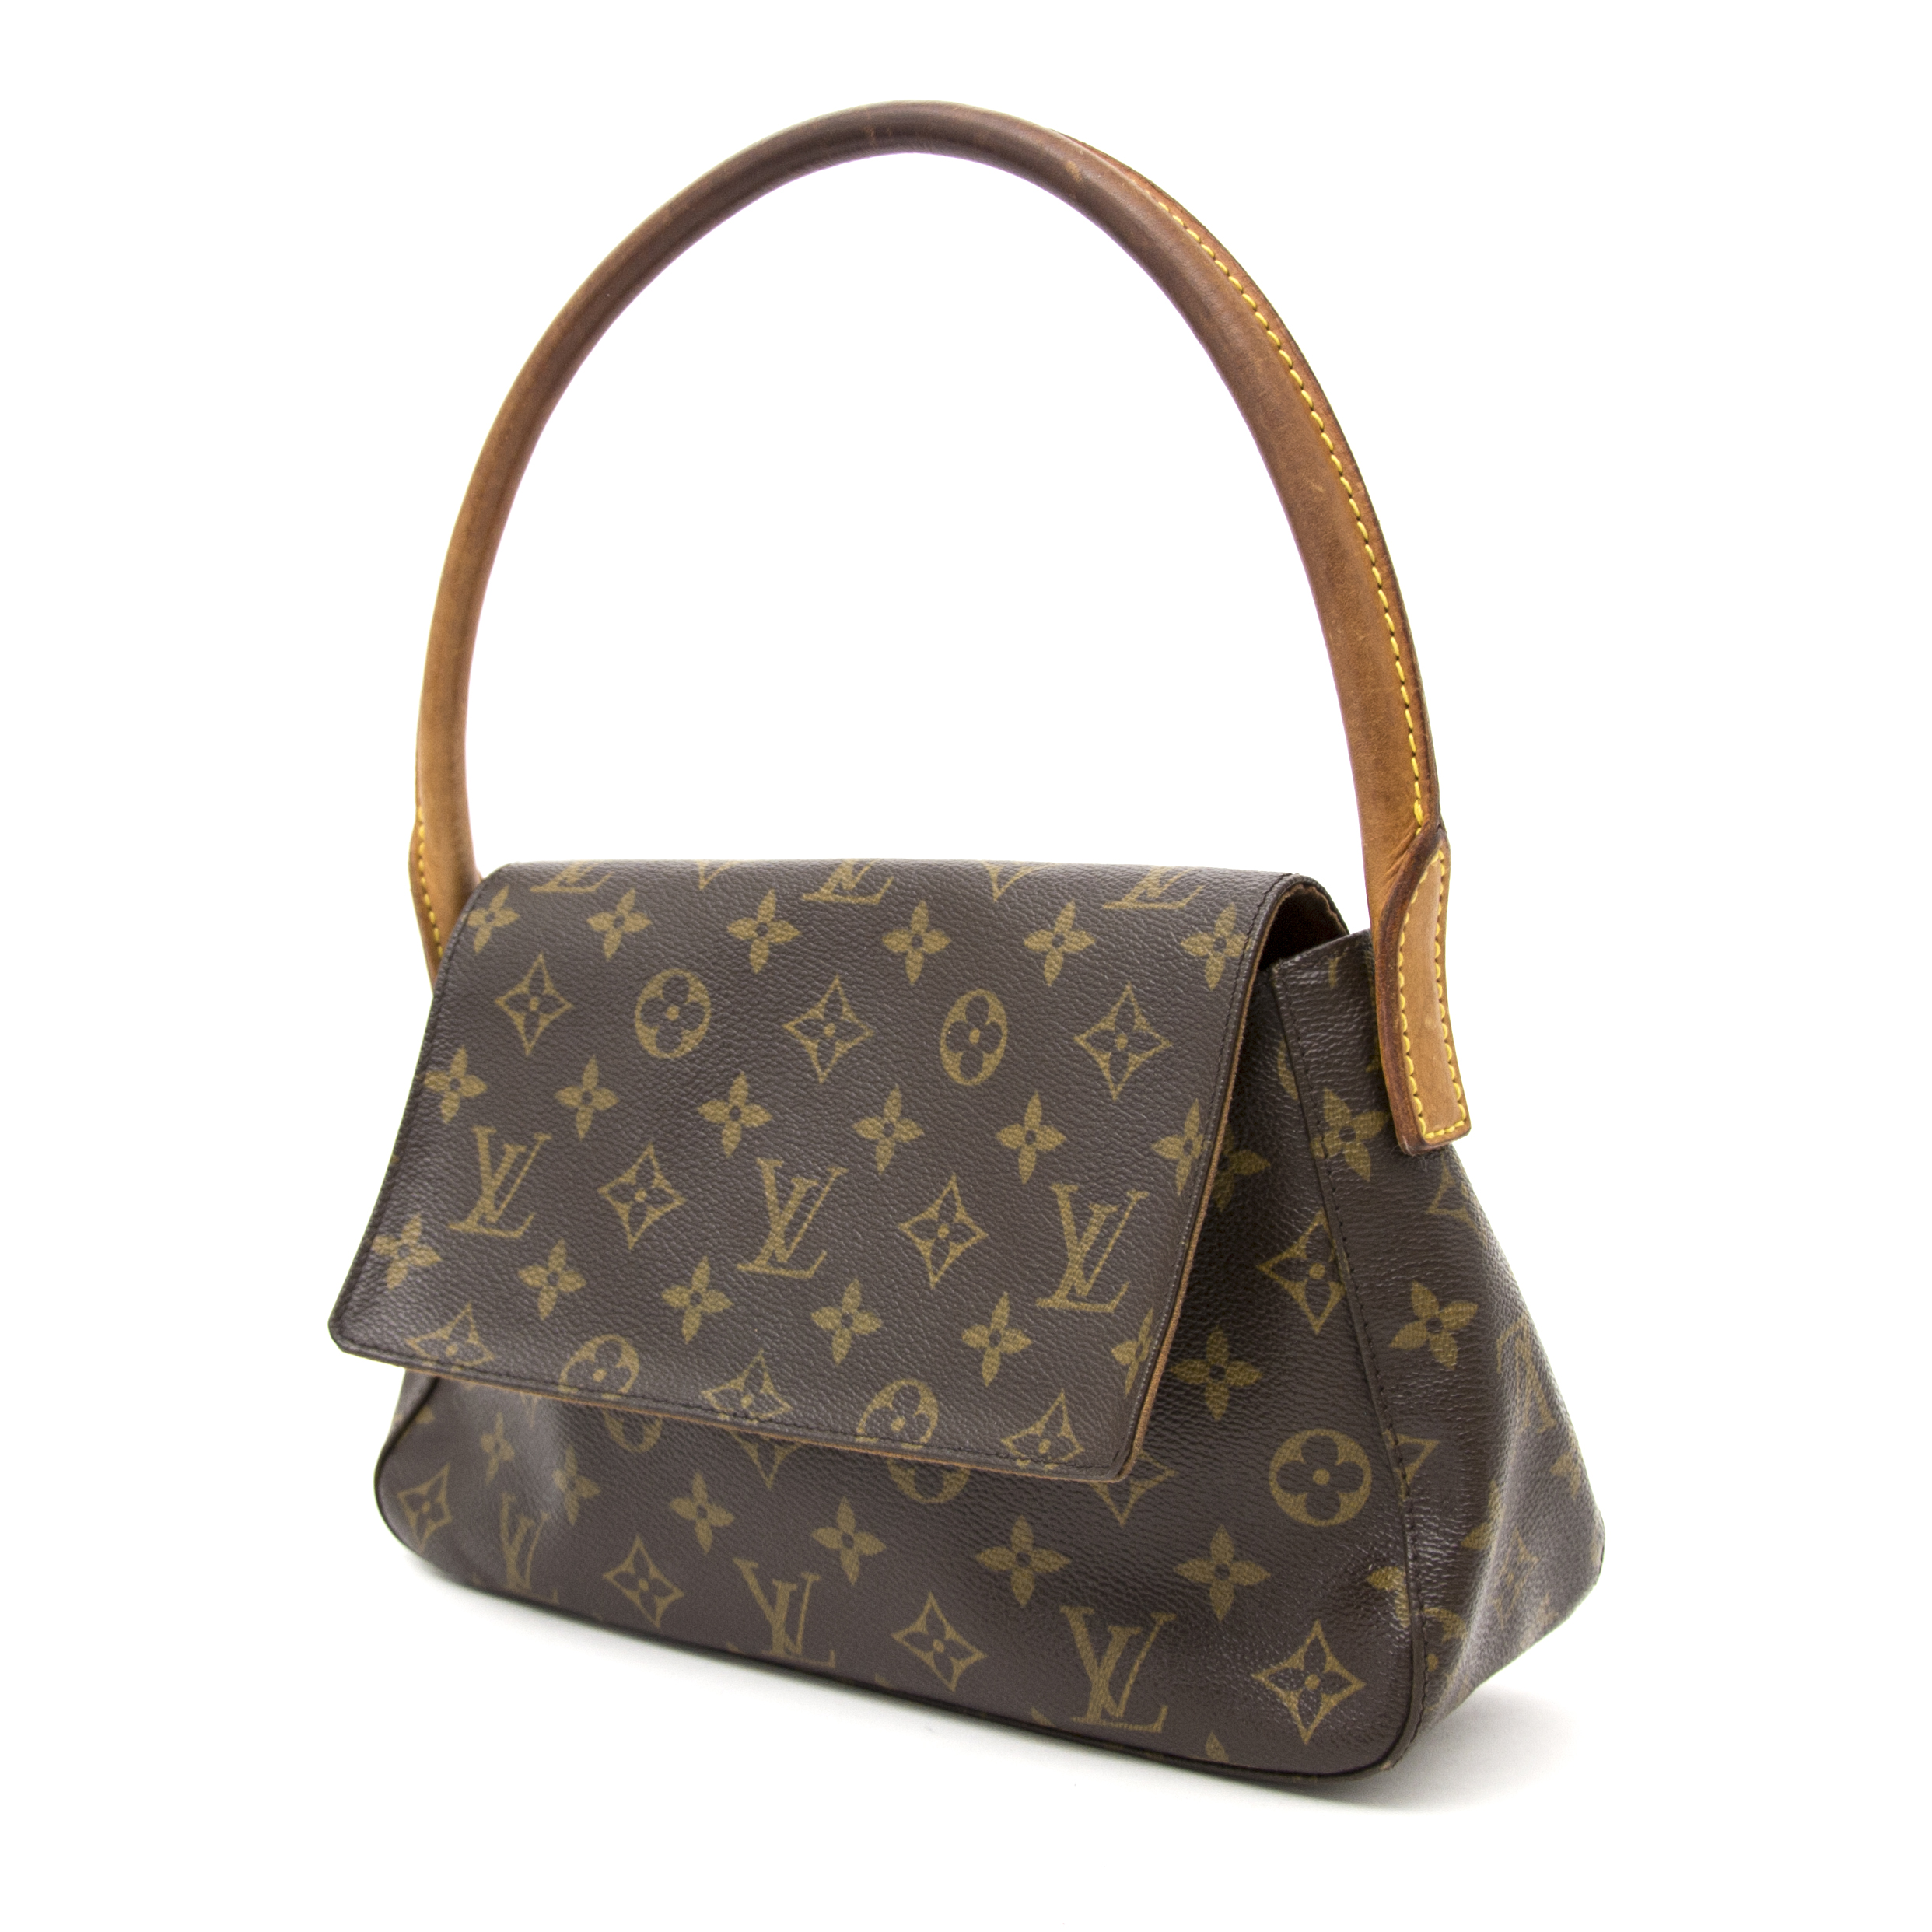 1b72bc5d03f5 Safe and secure Vintage Louis Vuitton Monogram Looping Bag for the best  price at Labellov webshop. Safe and